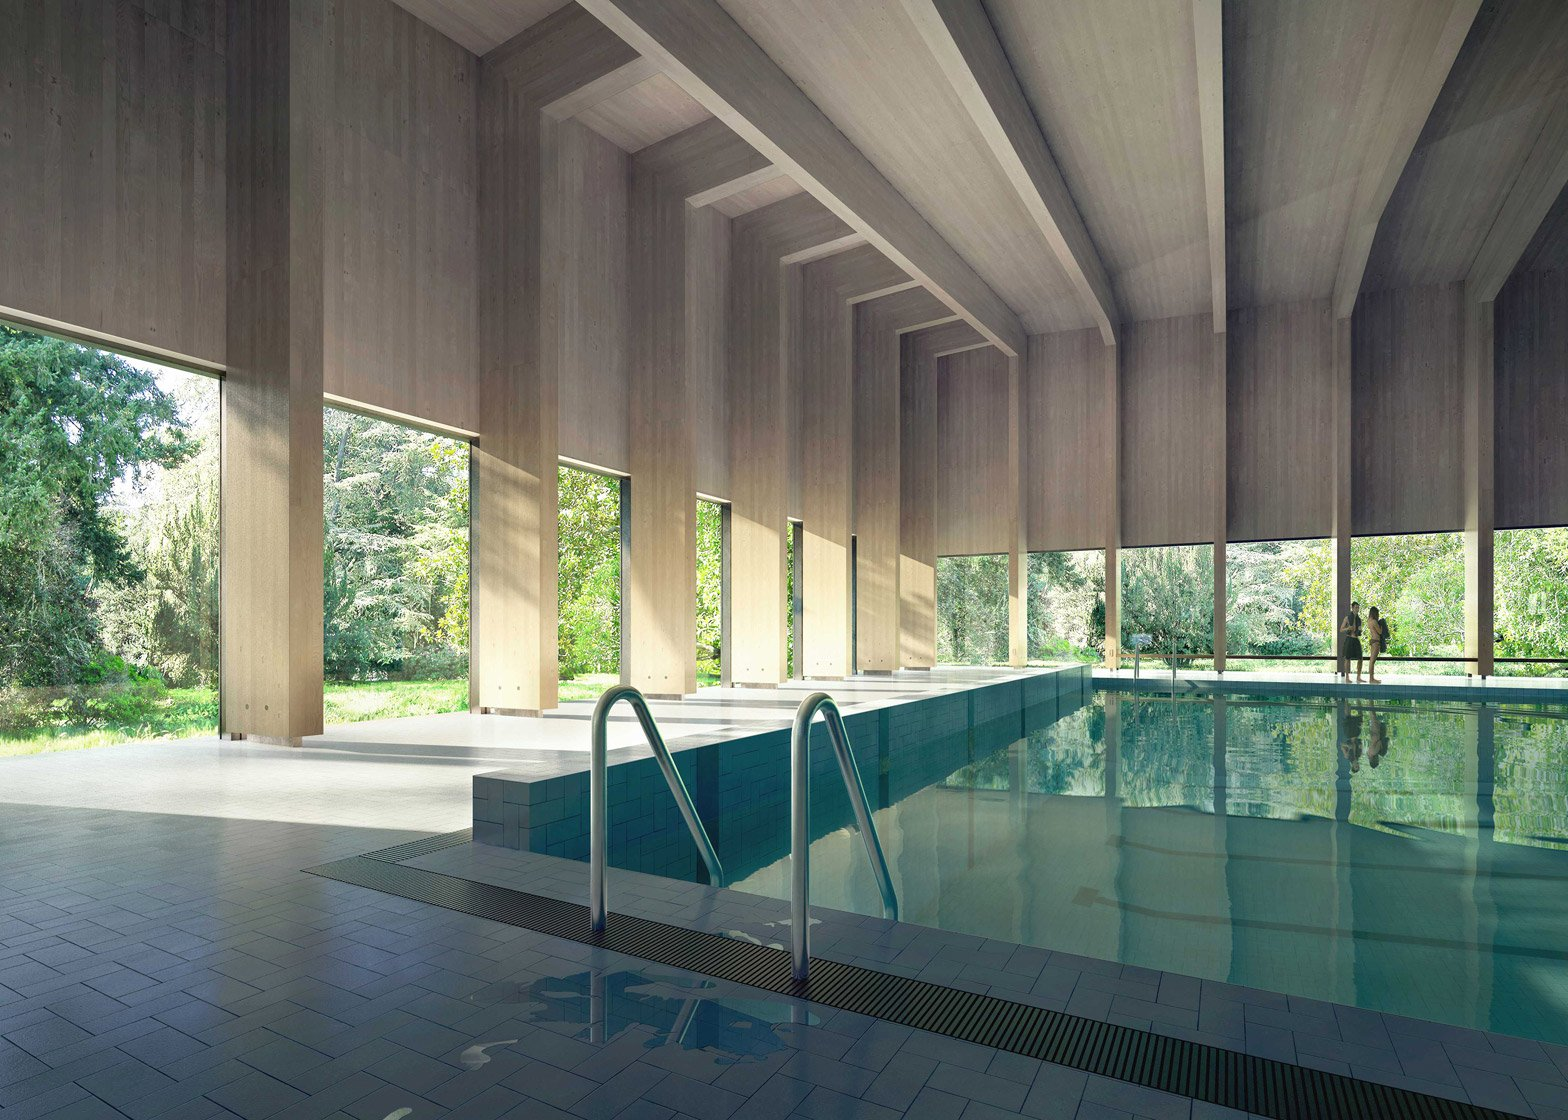 Ashtead pool by Hawkins Brown